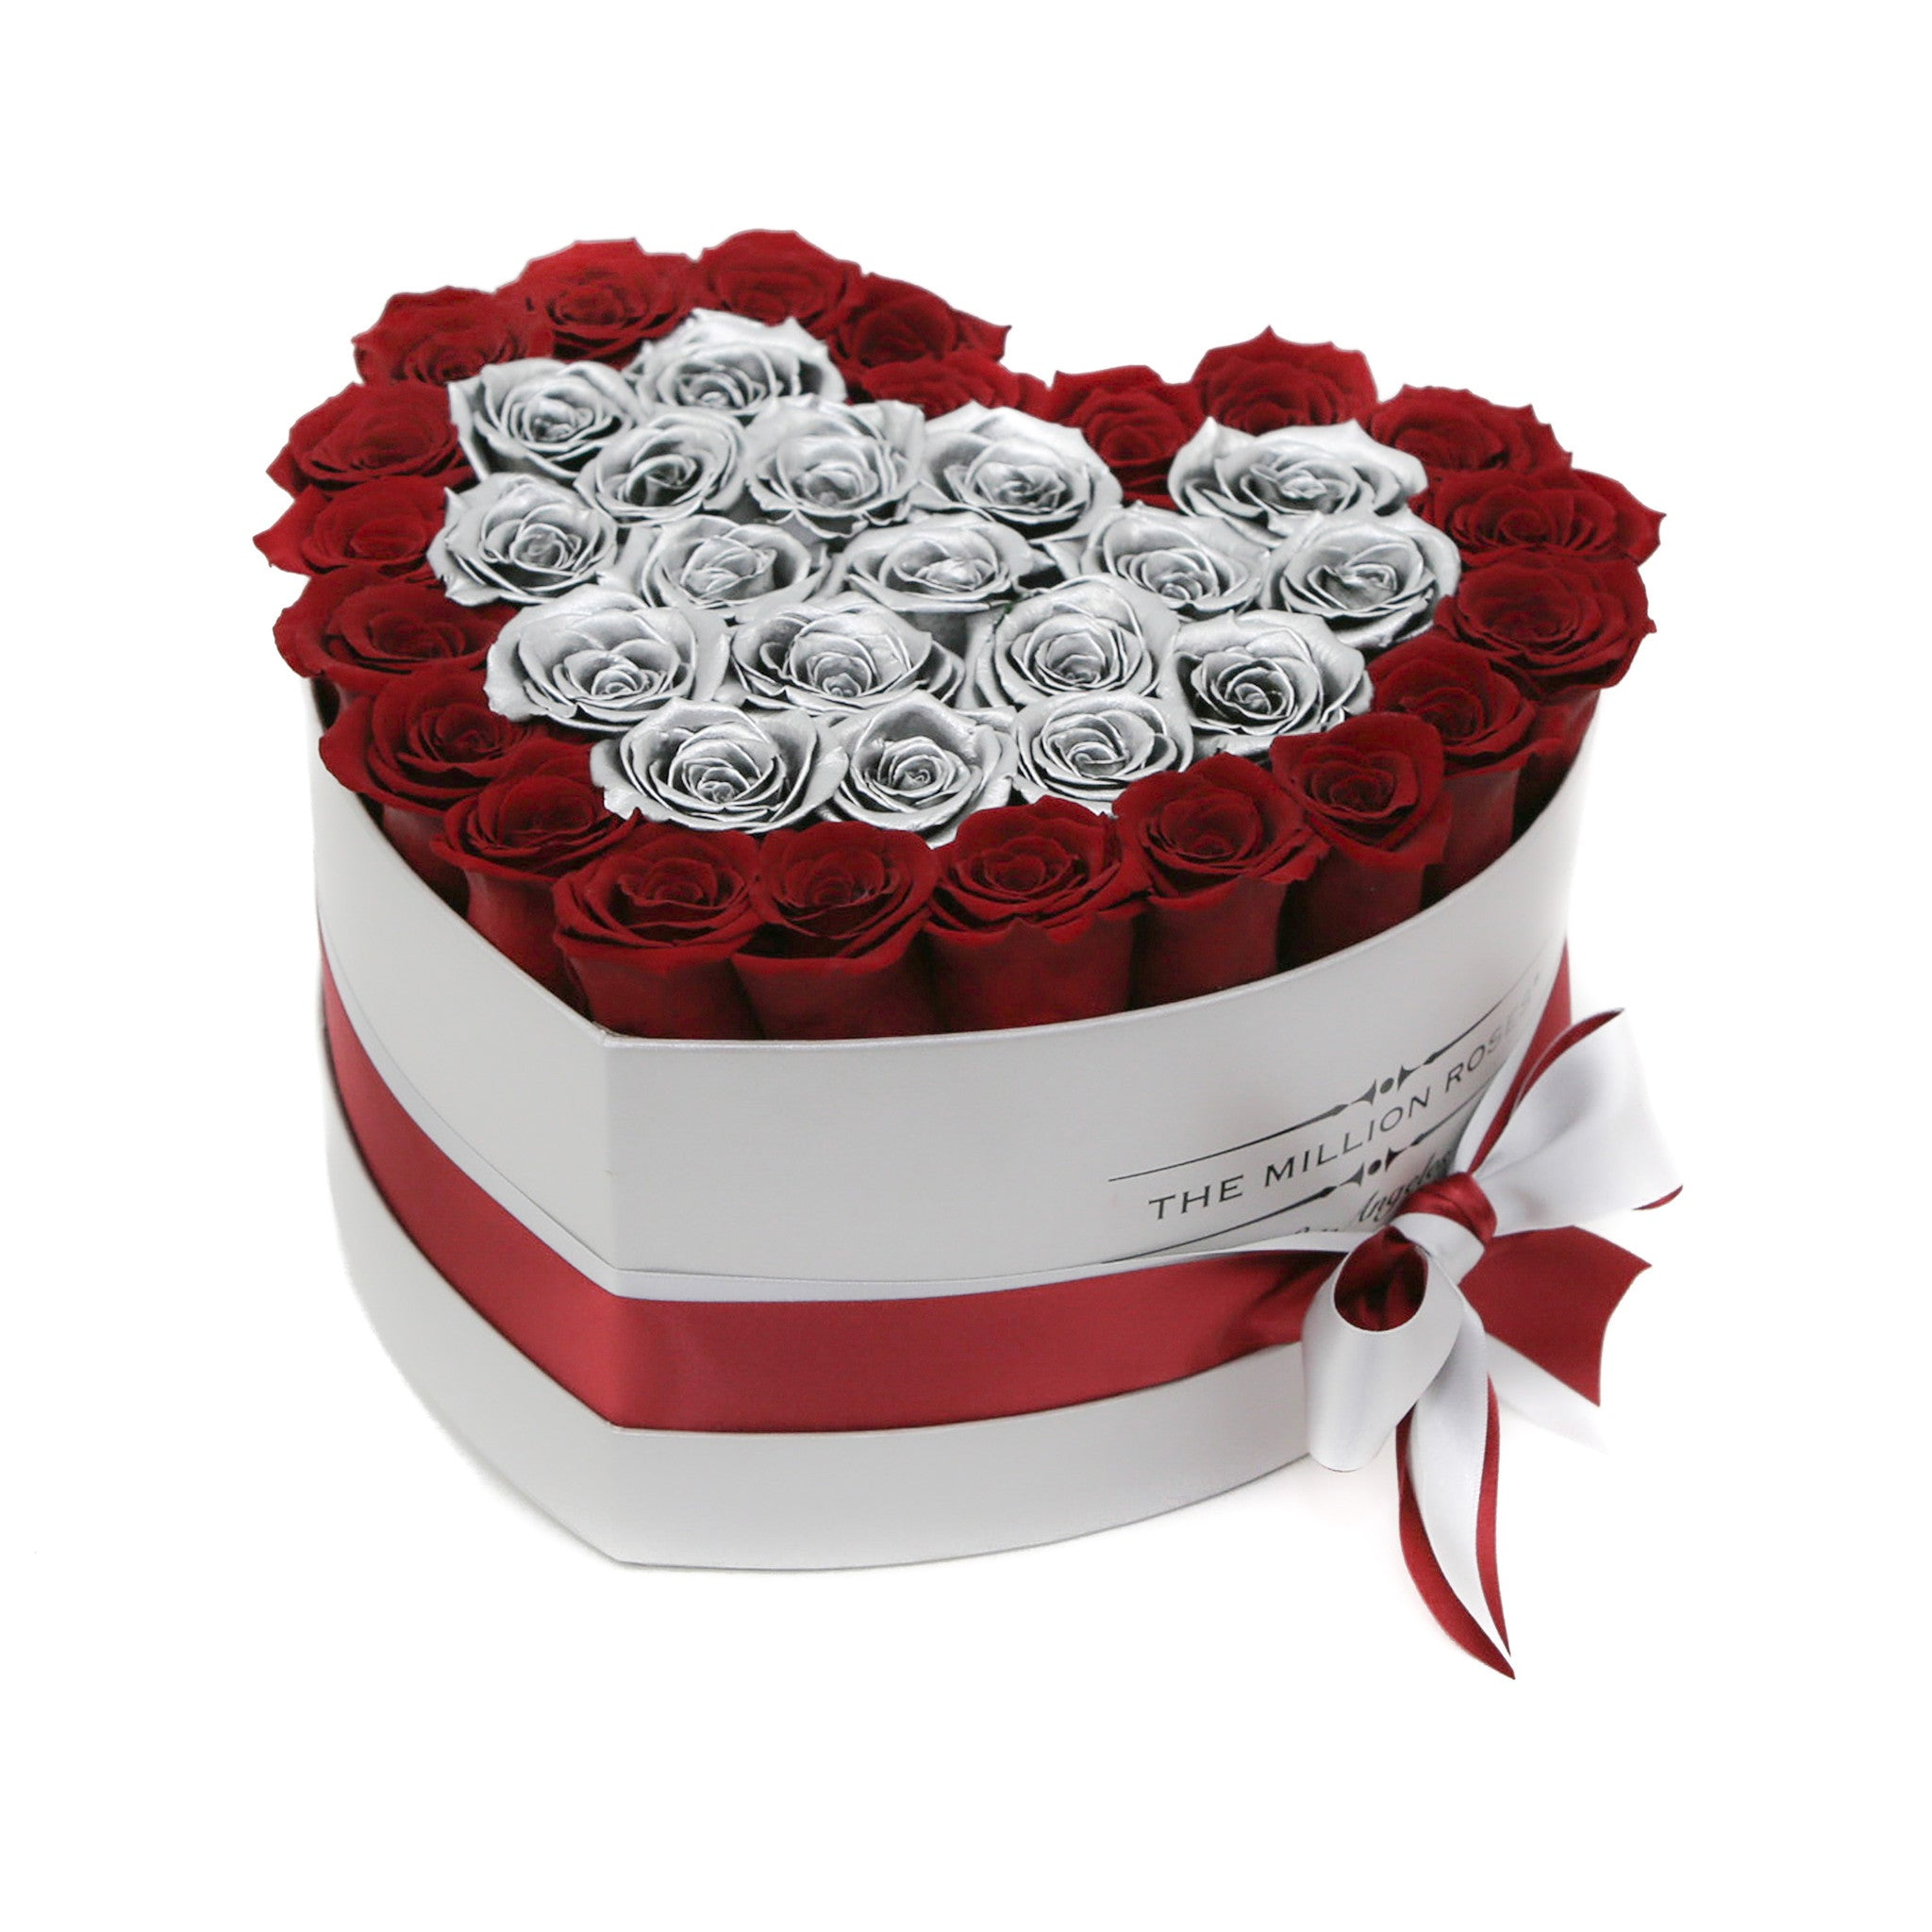 Heart - Red/Silver Roses - White Box